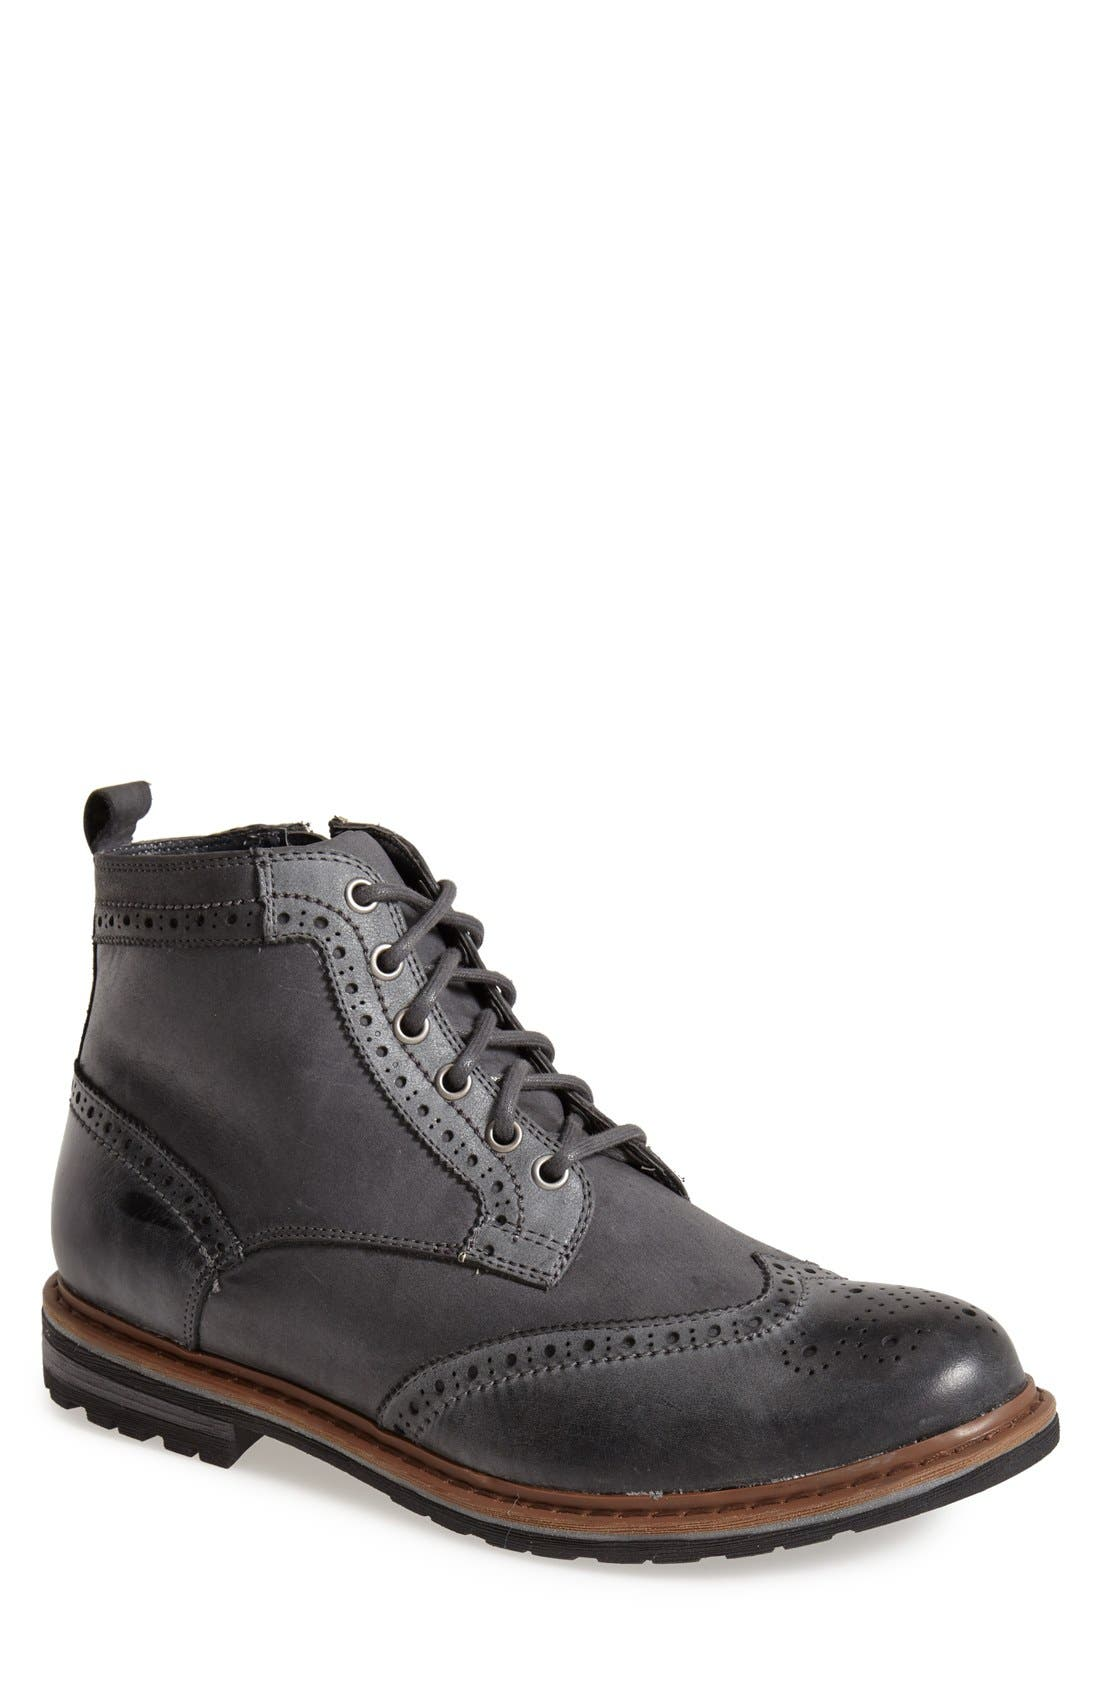 'Damien' Waterproof Wingtip Boot,                             Main thumbnail 1, color,                             021